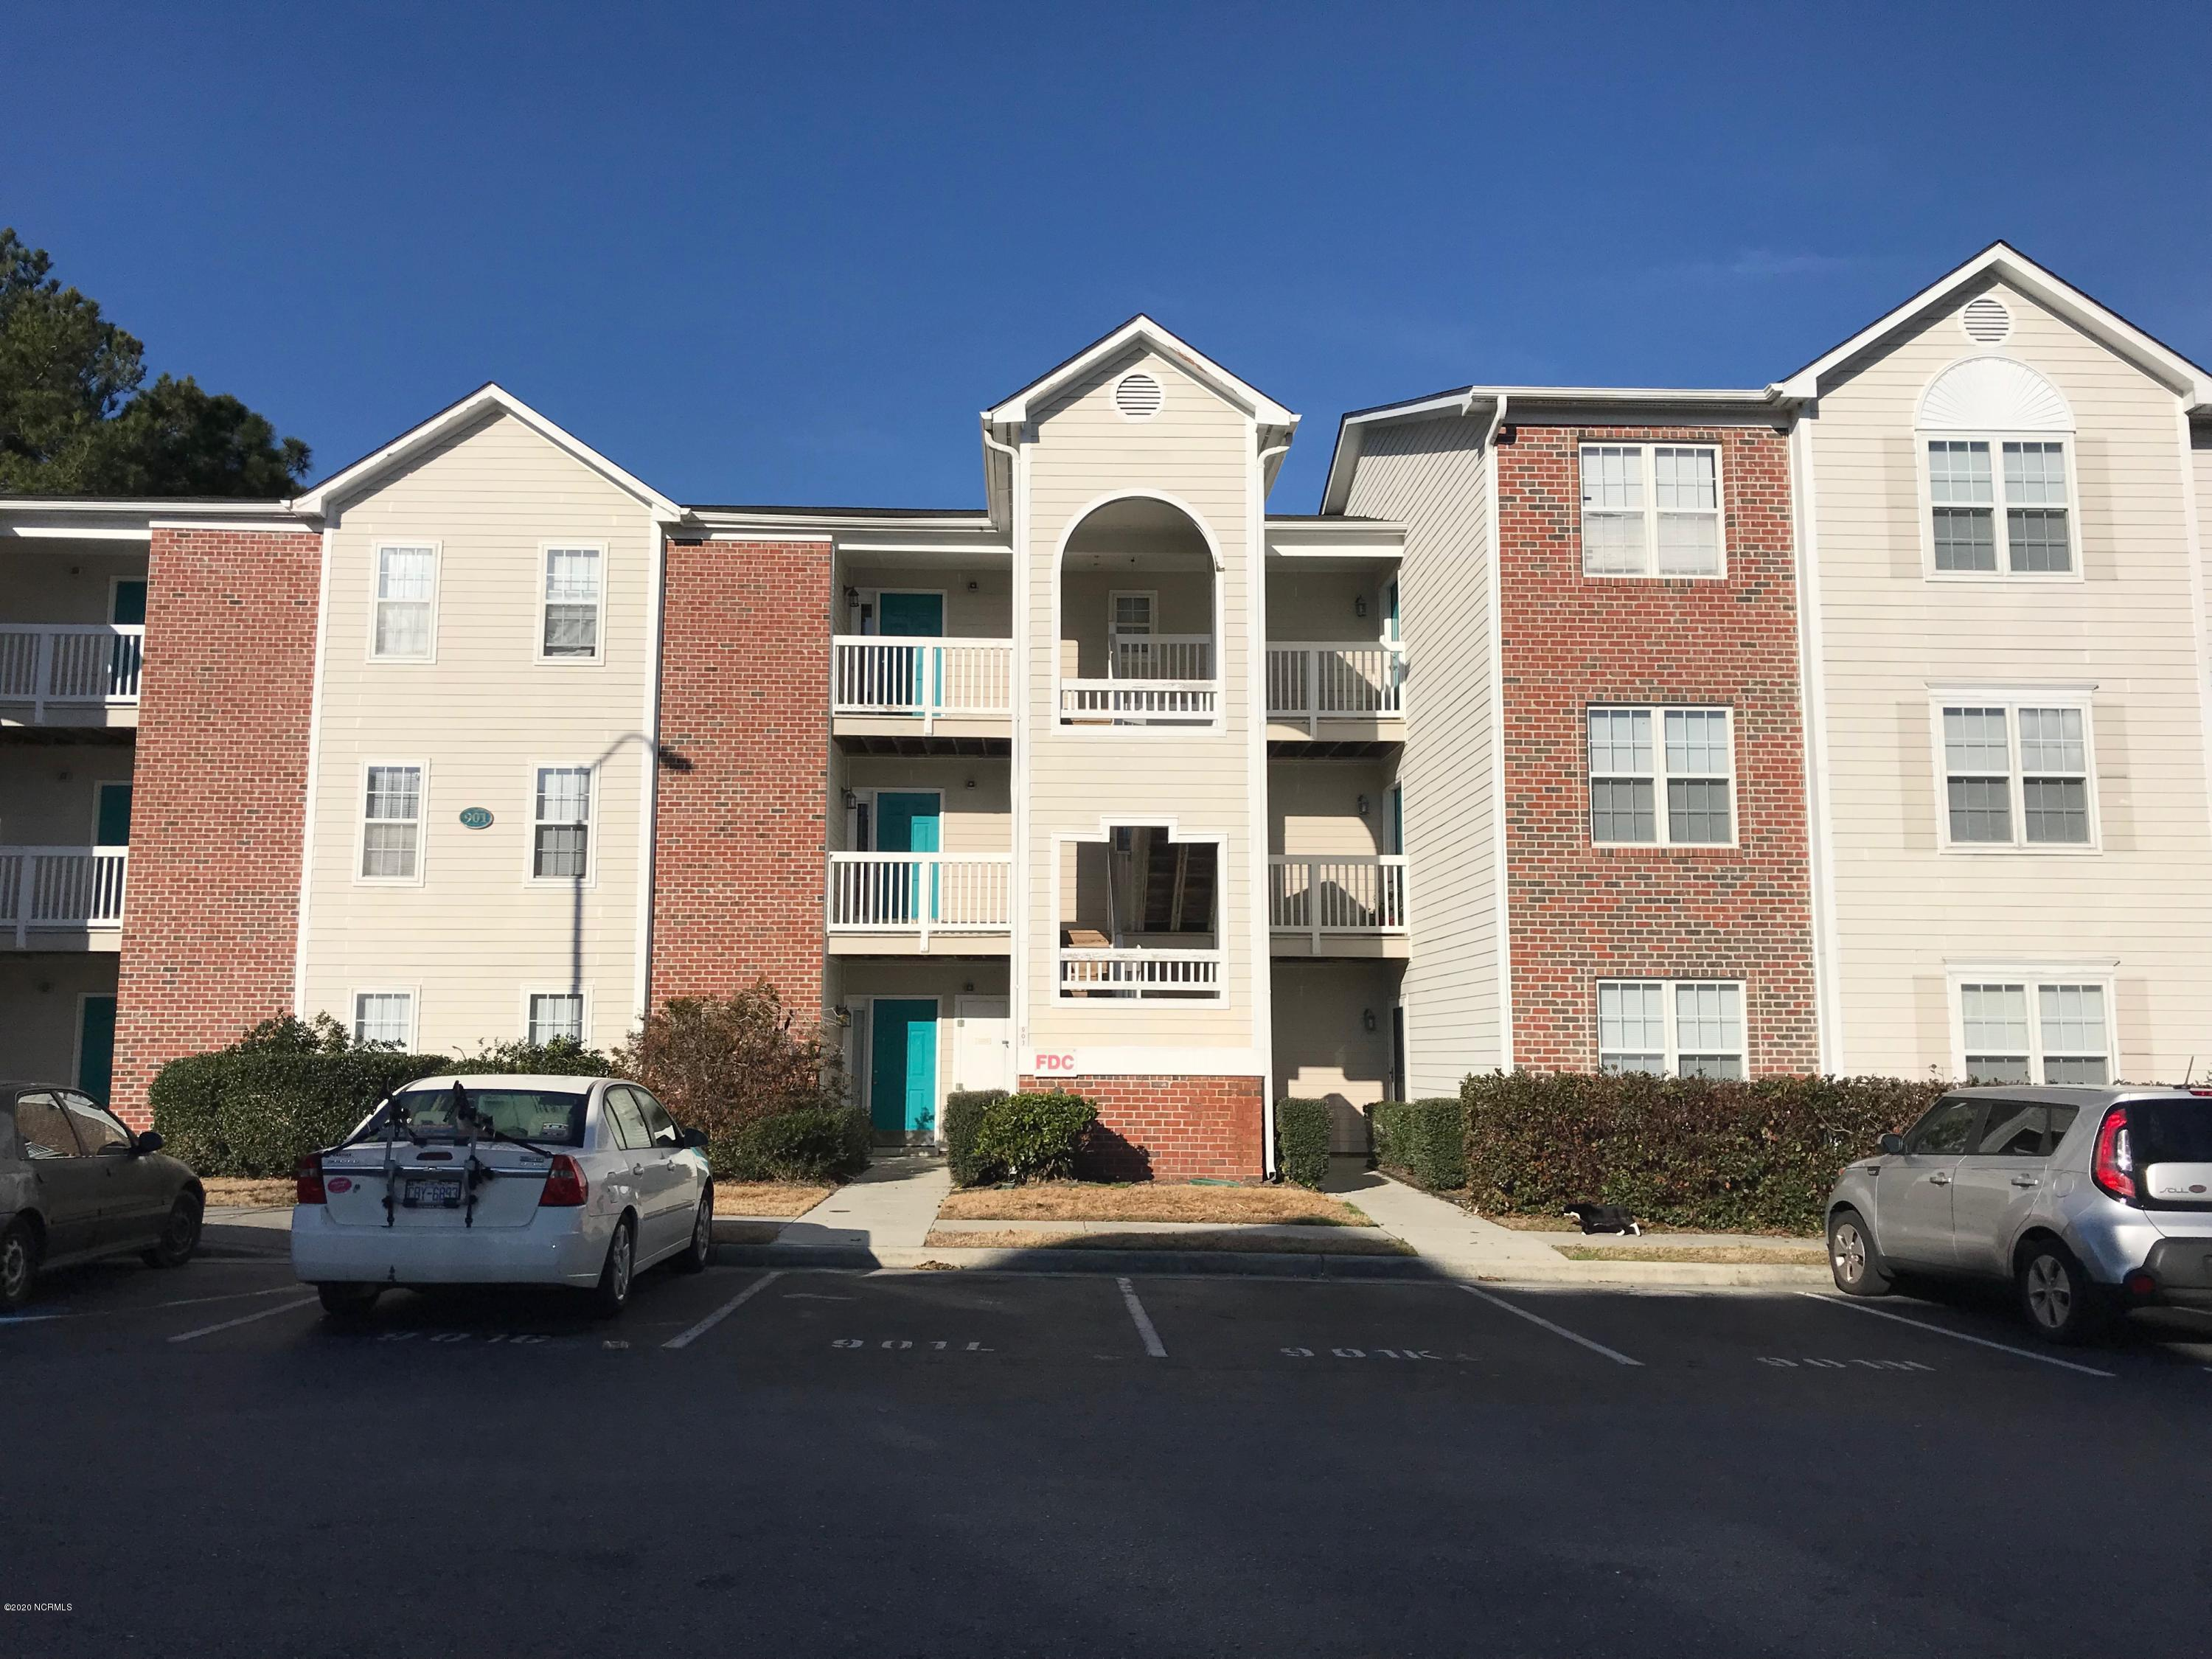 715 Clearwater Court, Wilmington, North Carolina 28405, 2 Bedrooms Bedrooms, ,2 BathroomsBathrooms,Residential,For Sale,Clearwater,100234479